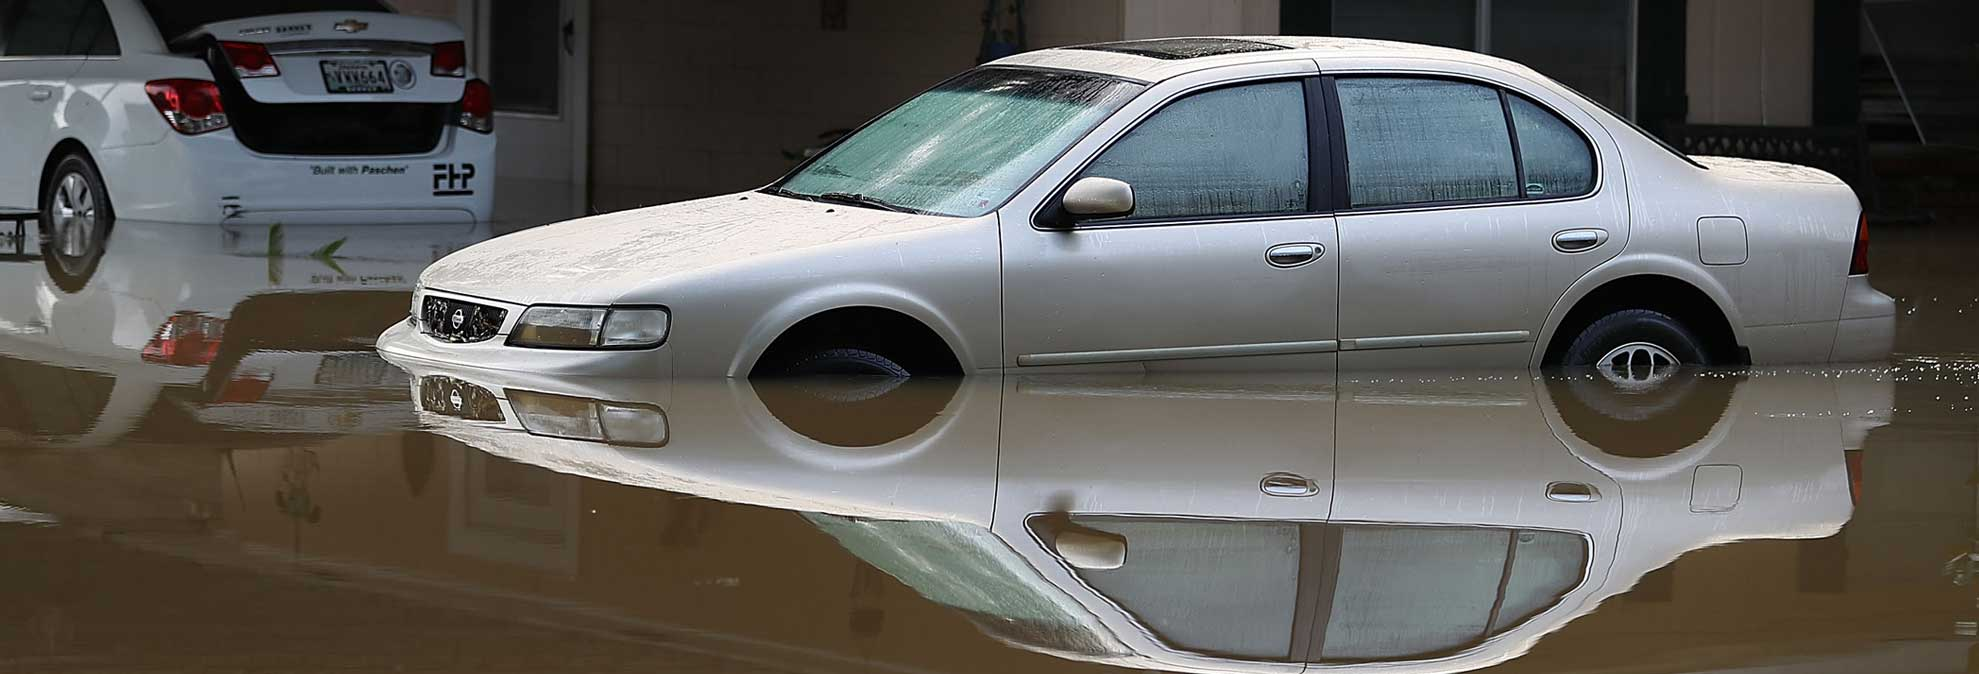 Beware a Flood of Flooded Cars - Consumer Reports